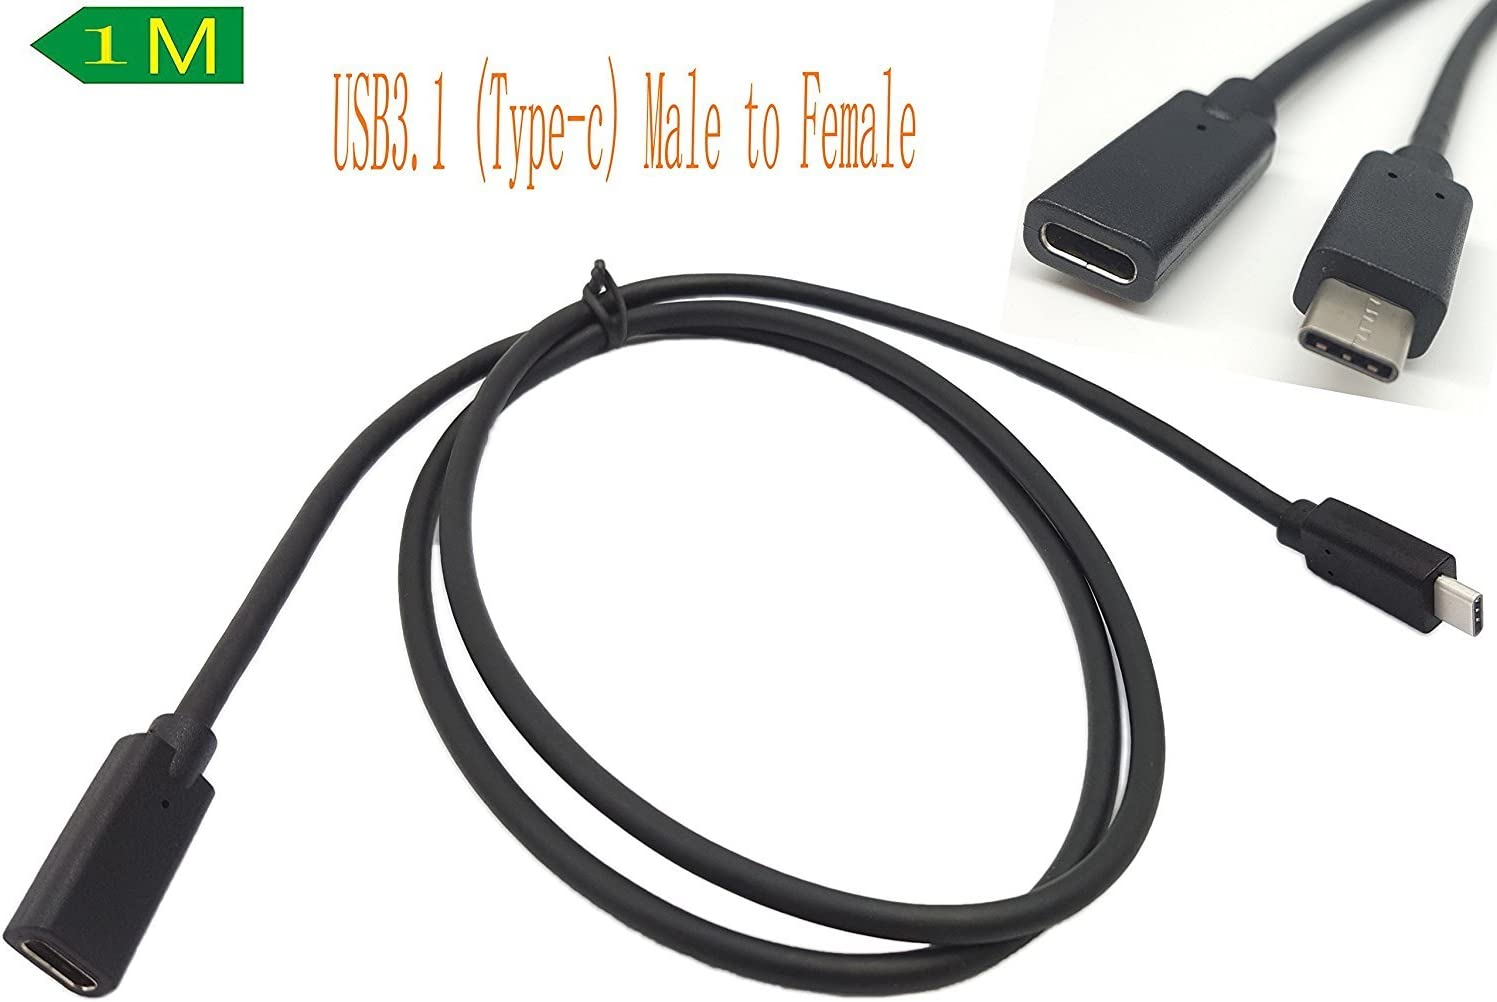 10Gbps USB-C Cable USB3.1 USB-C Type C Male to Female Charging /& Sync Cable,SinLoon High Speed Super Fast Gen 2 1M F3.3ft